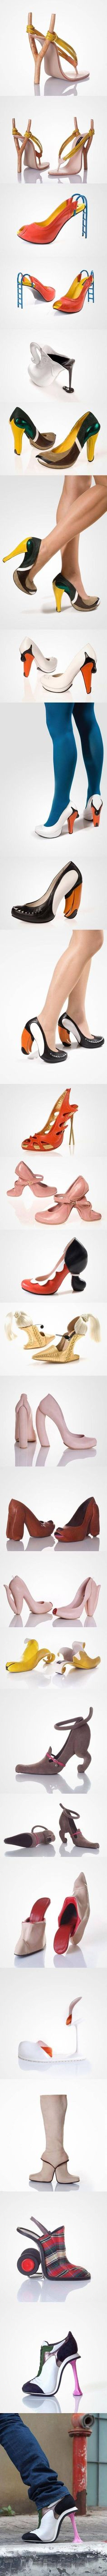 Look at the funky cool heels! HOW FUN! Never wear 'em, but sure are fun! Crazy High Heels, Crazy Shoes, Me Too Shoes, Weird Shoes, Funny Shoes, Designer High Heels, Designer Shoes, Shoe Art, Art Shoes